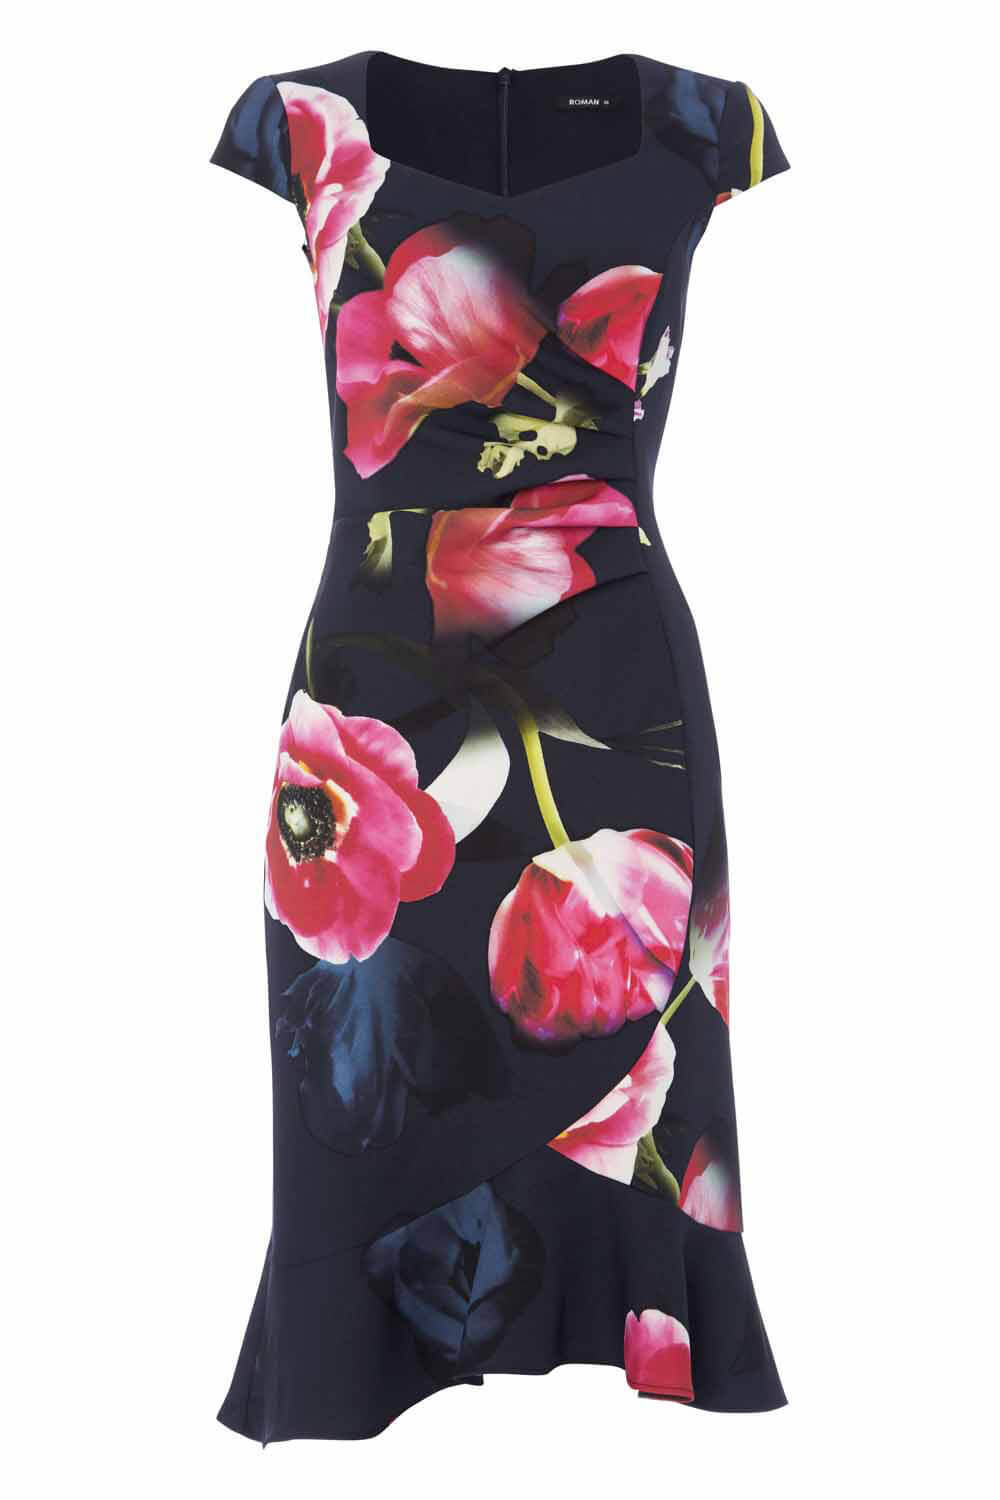 Roman-Originals-Women-Floral-Print-Midi-Ruffle-Hem-Dress thumbnail 17